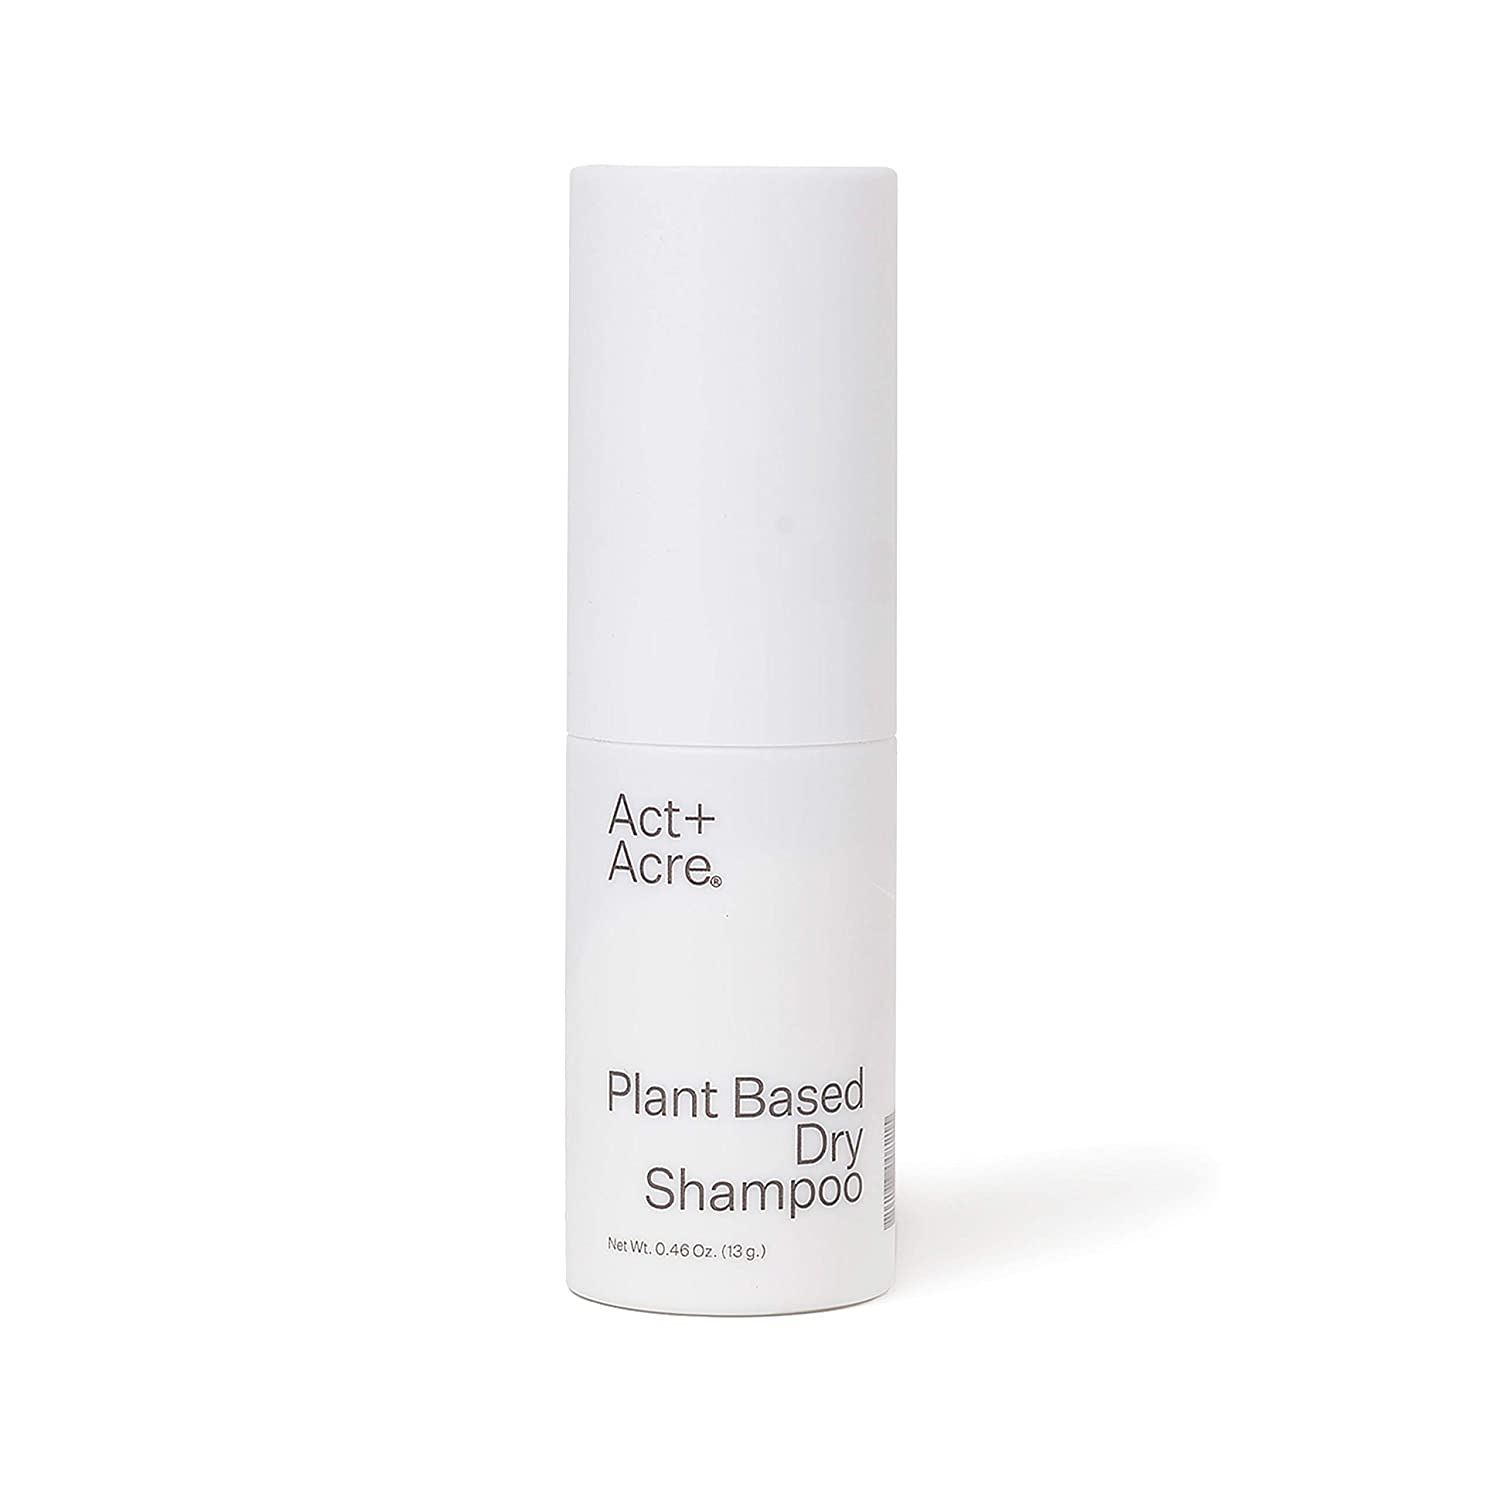 Amazon.com: Act+Acre Plant Based Dry Shampoo | Natural and Unscented Powder  Spray with Fulvic Acid and Rice to Refresh Oily Hair and Build Volume |  Talc Free and Colorless for Light and